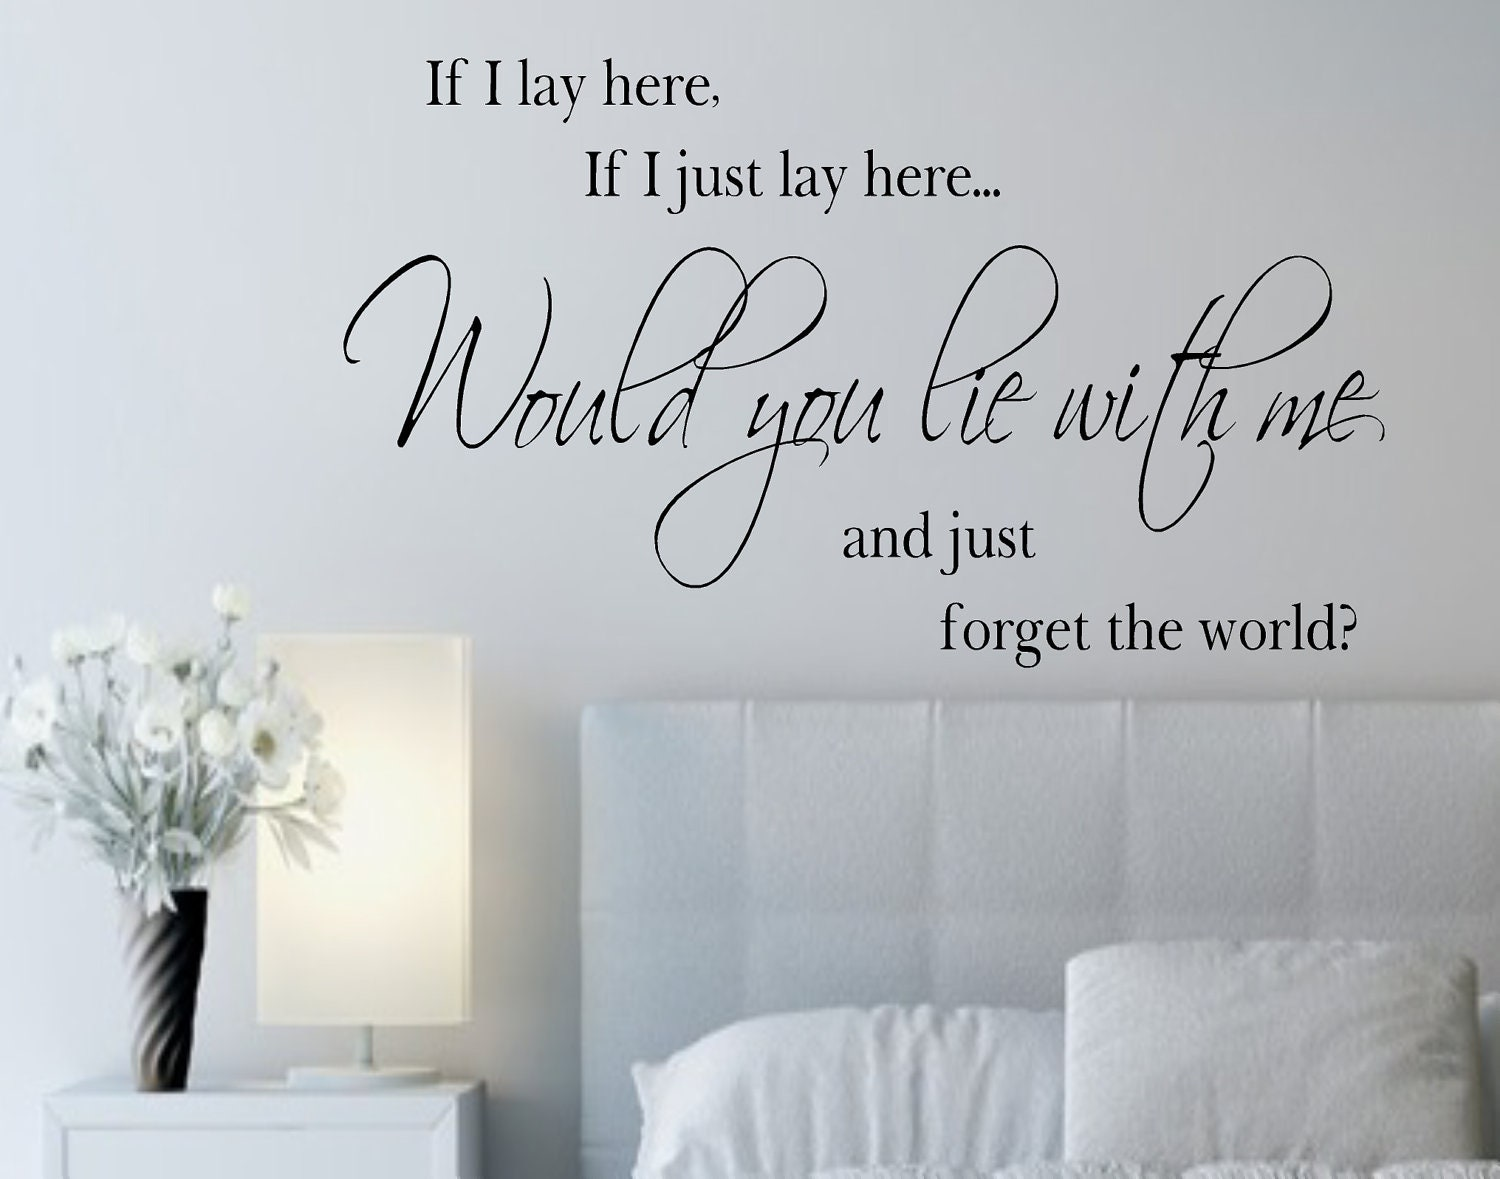 If I Lay Here If I Just Lay Here Vinyl Wall Decals